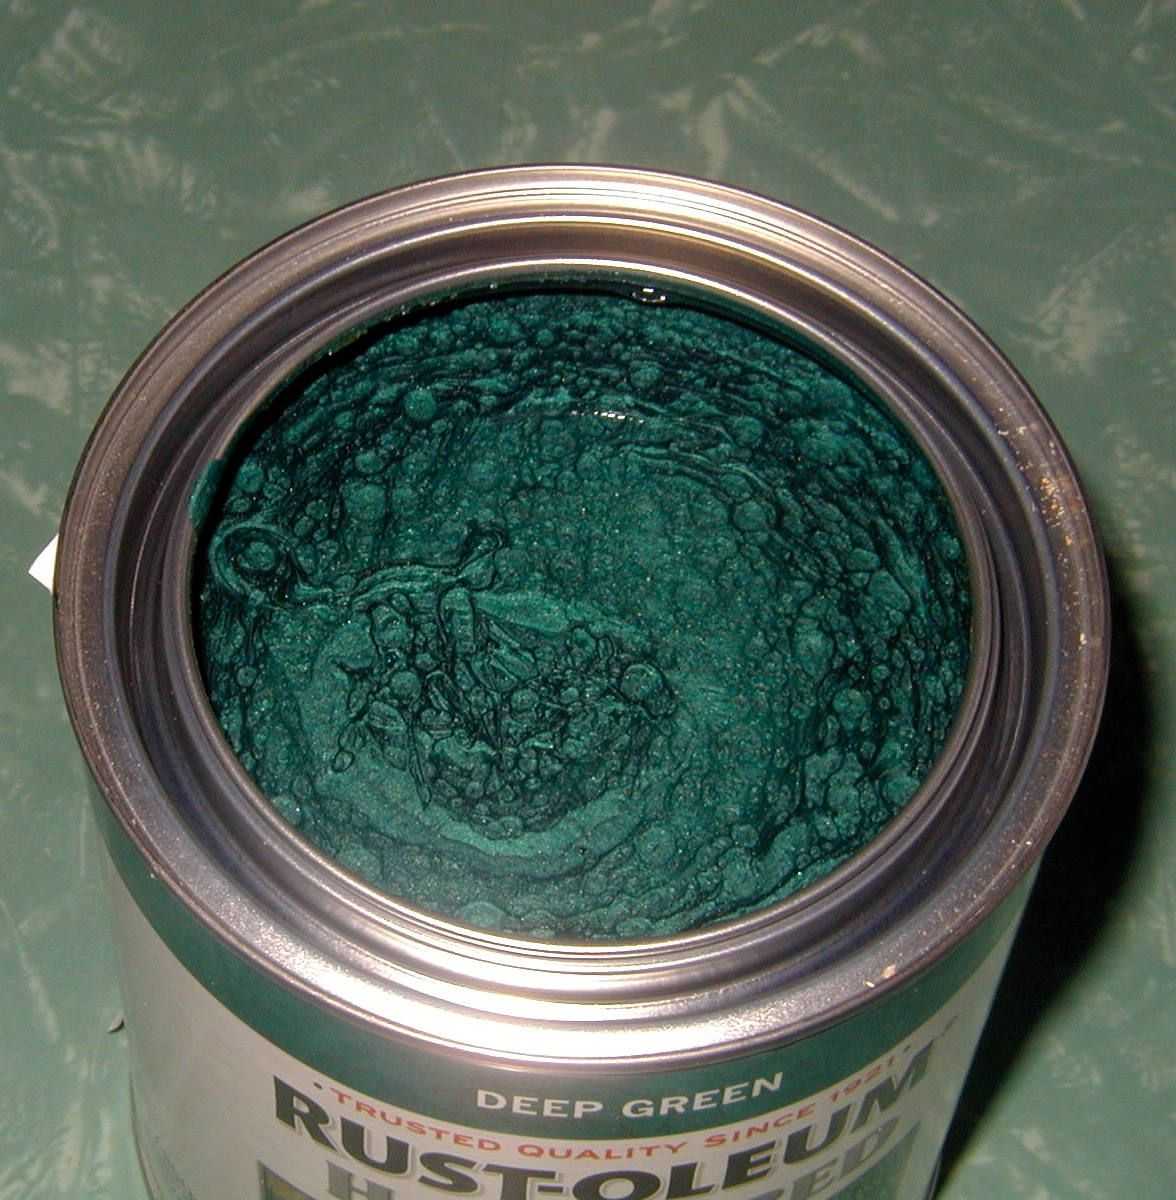 This Is A Brand New 1 Quart Can Of Dark Green Hammered Metal